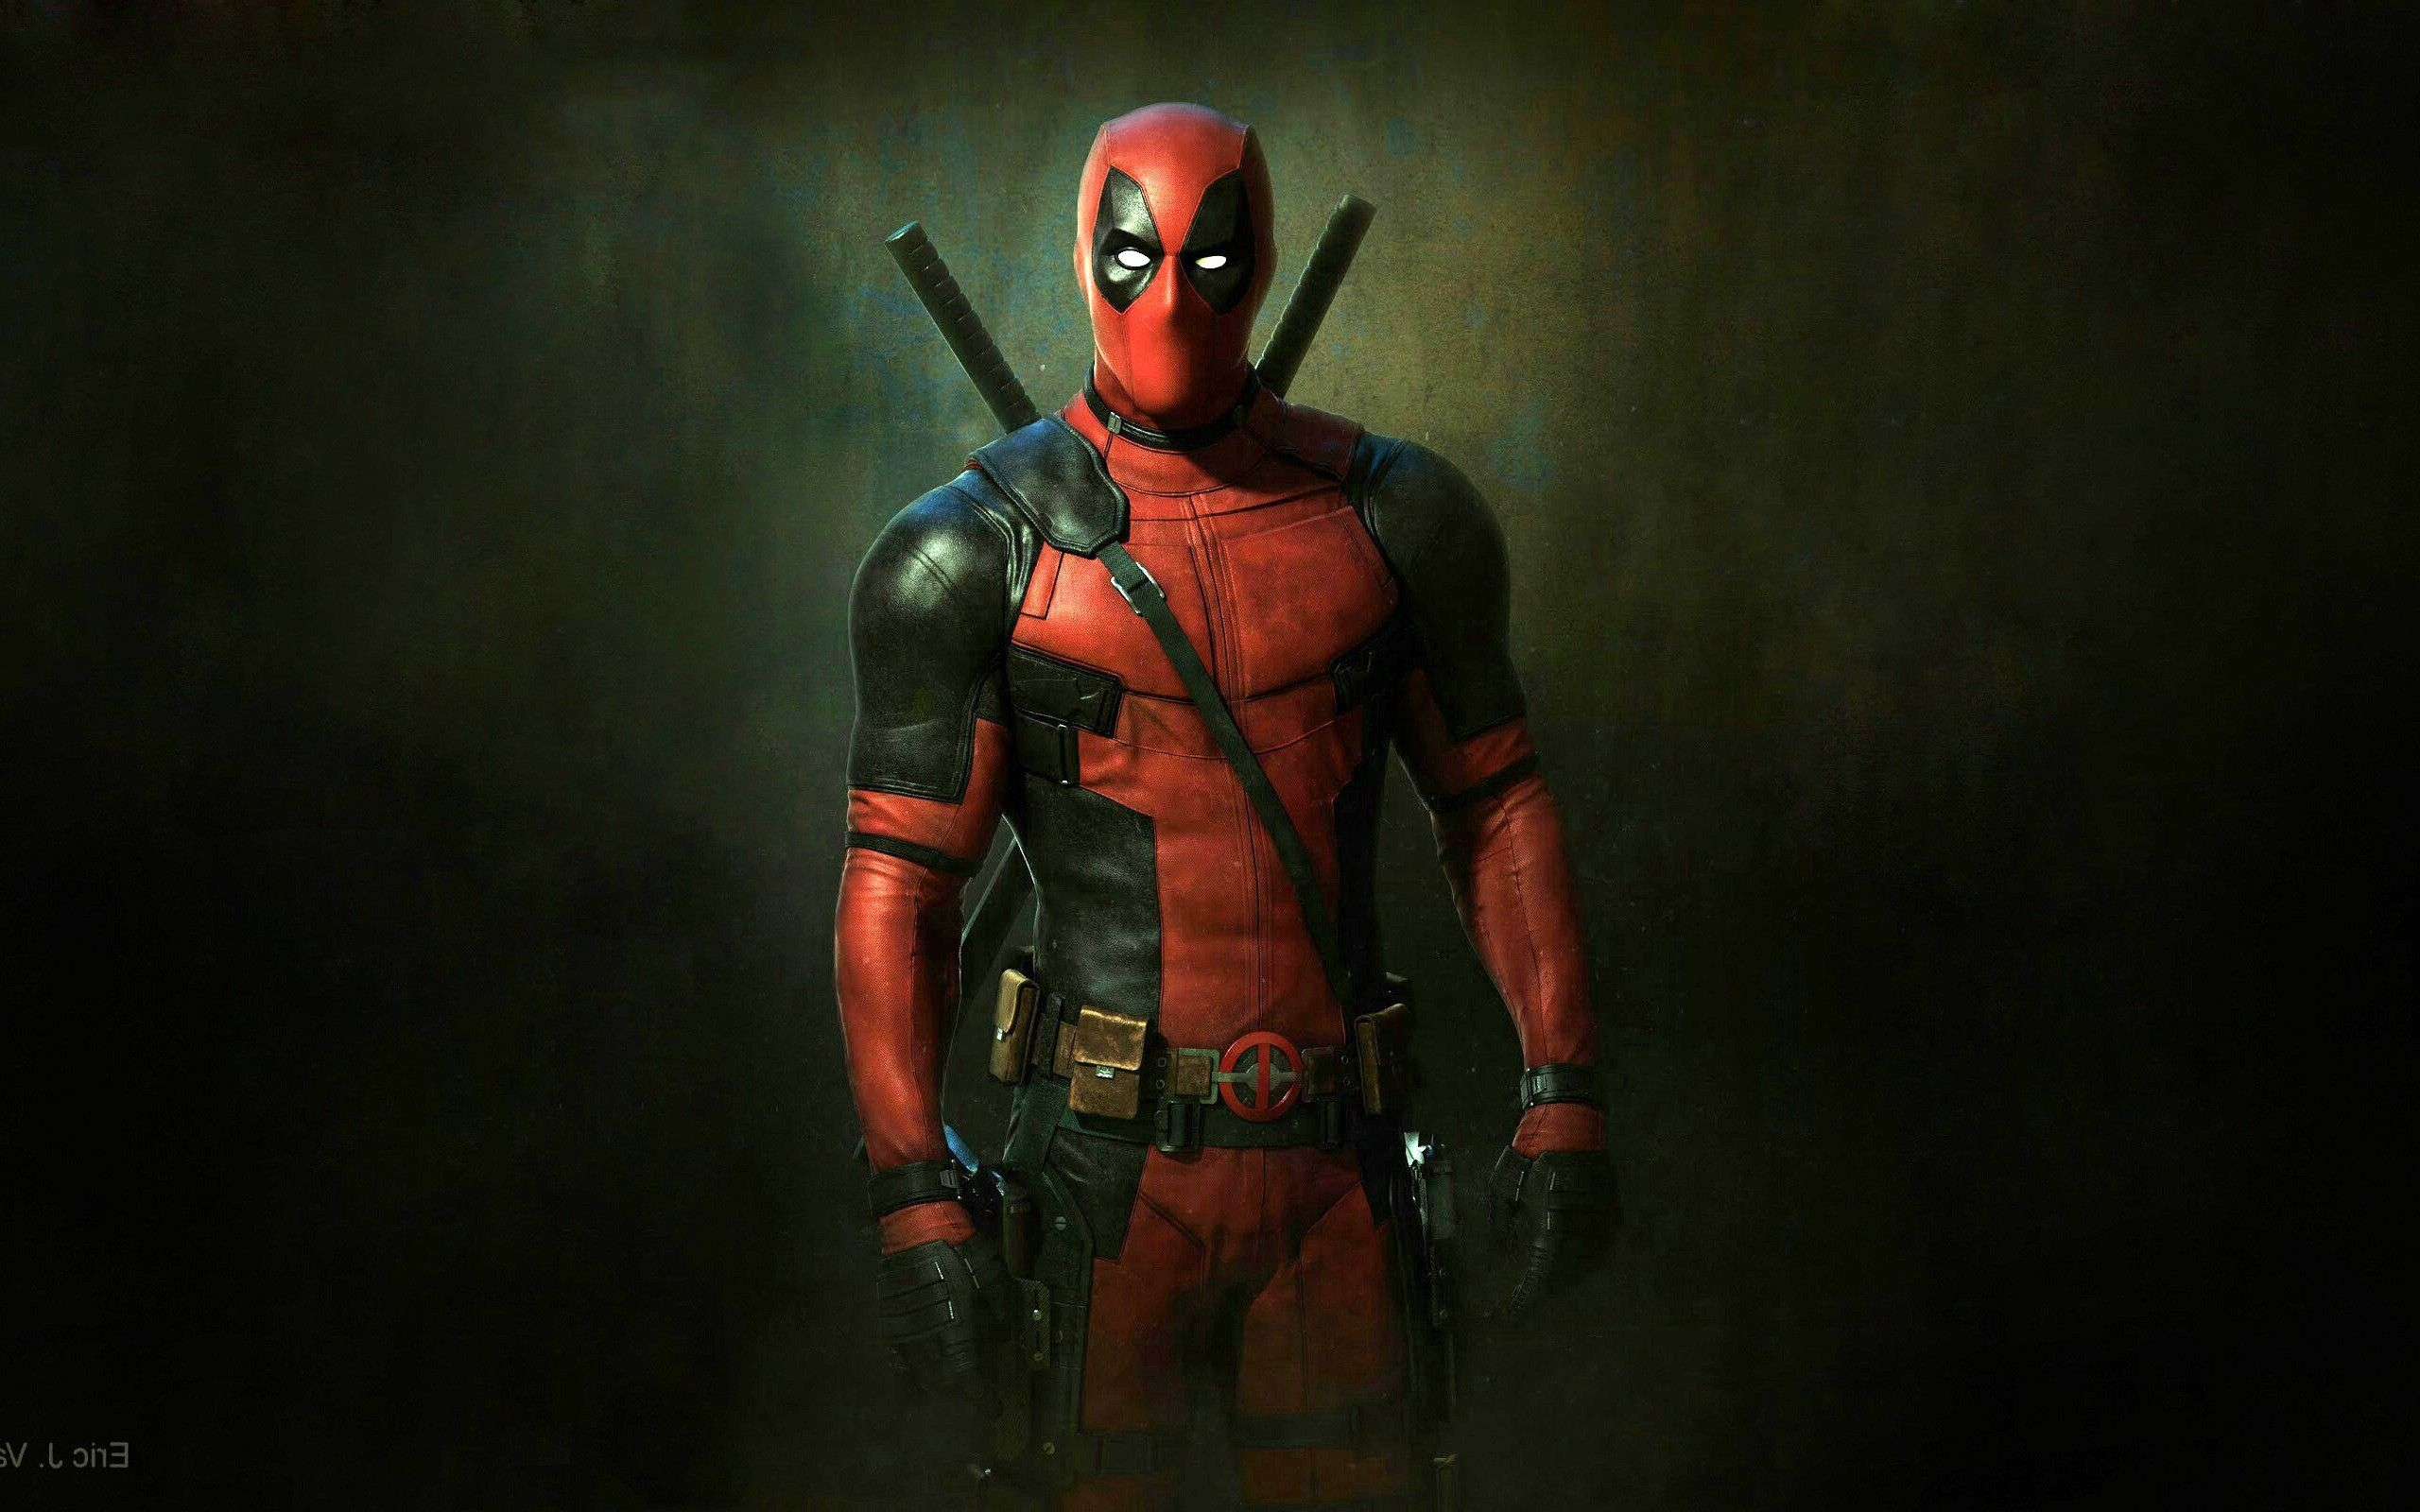 Dead Pool Wallpapers Top Free Dead Pool Backgrounds Wallpaperaccess